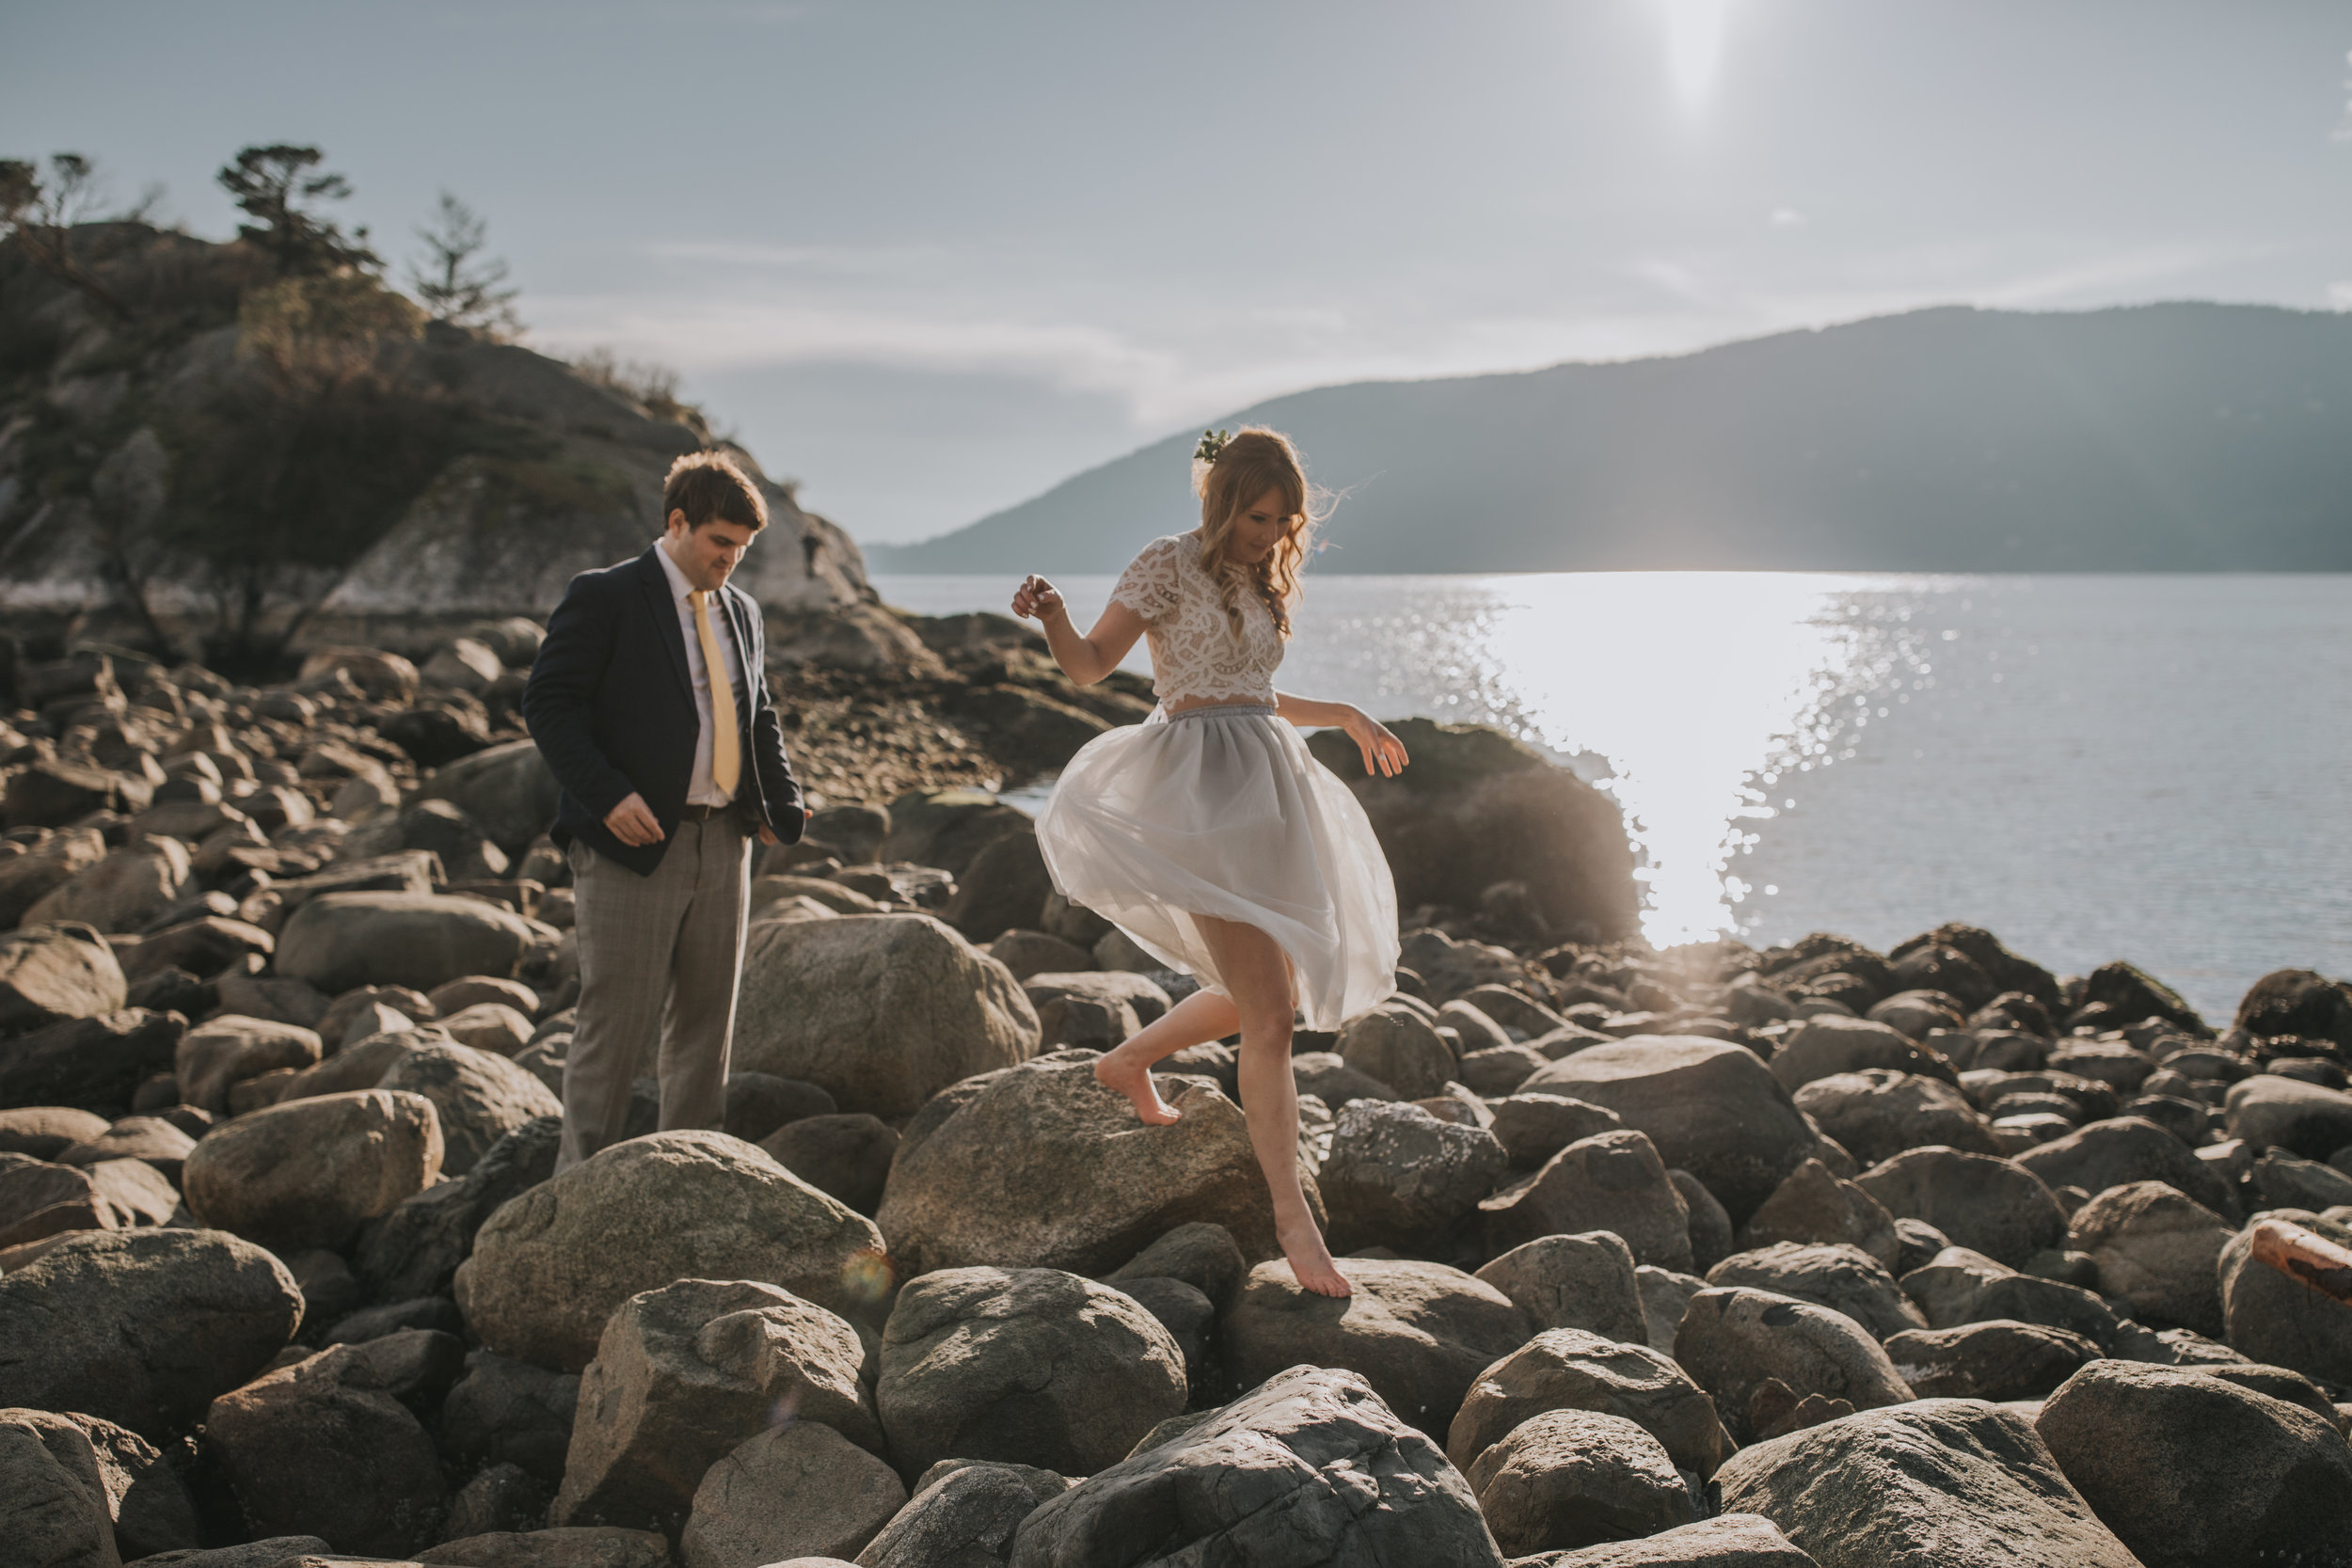 Whytecliff Park Engagement Photos - Vancouver Wedding Photographer - Jennifer Picard Photography001.JPG